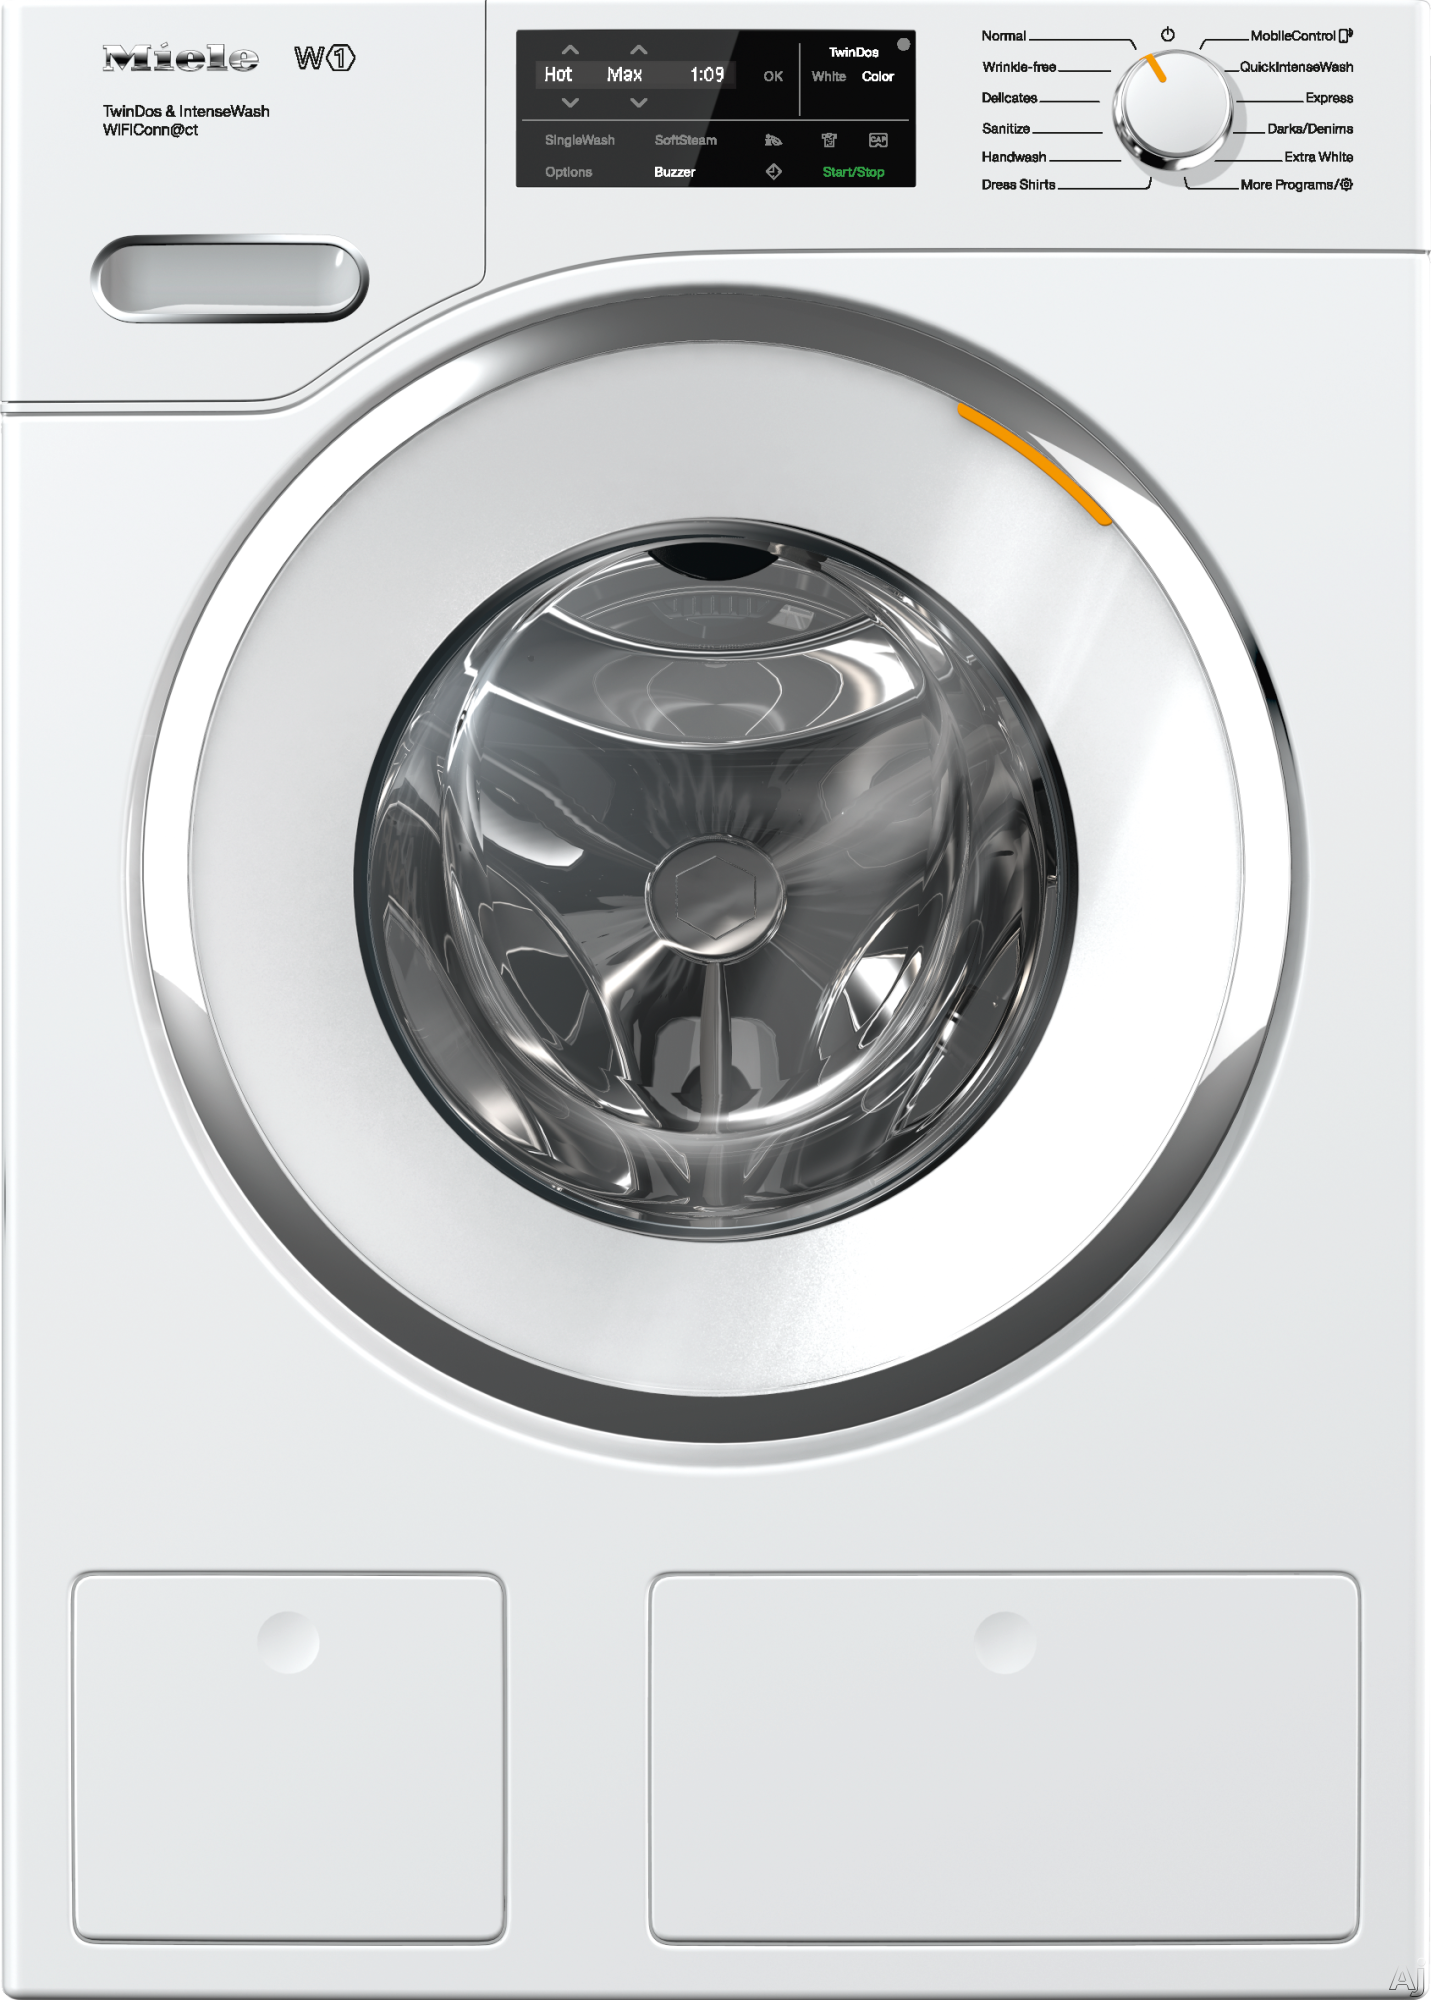 Miele WWH860WCS 24 Inch Front Load Washer with HoneyComb Drum, 2.26 Cu. Ft. Capacity, TwinDos, 13 Wash Programs, CapDosing, SoftStream, WiFiConn@ct, Eco Feedback Indicator, Energy Star, Delayed Start and Countdown Indicator WWH860WCS